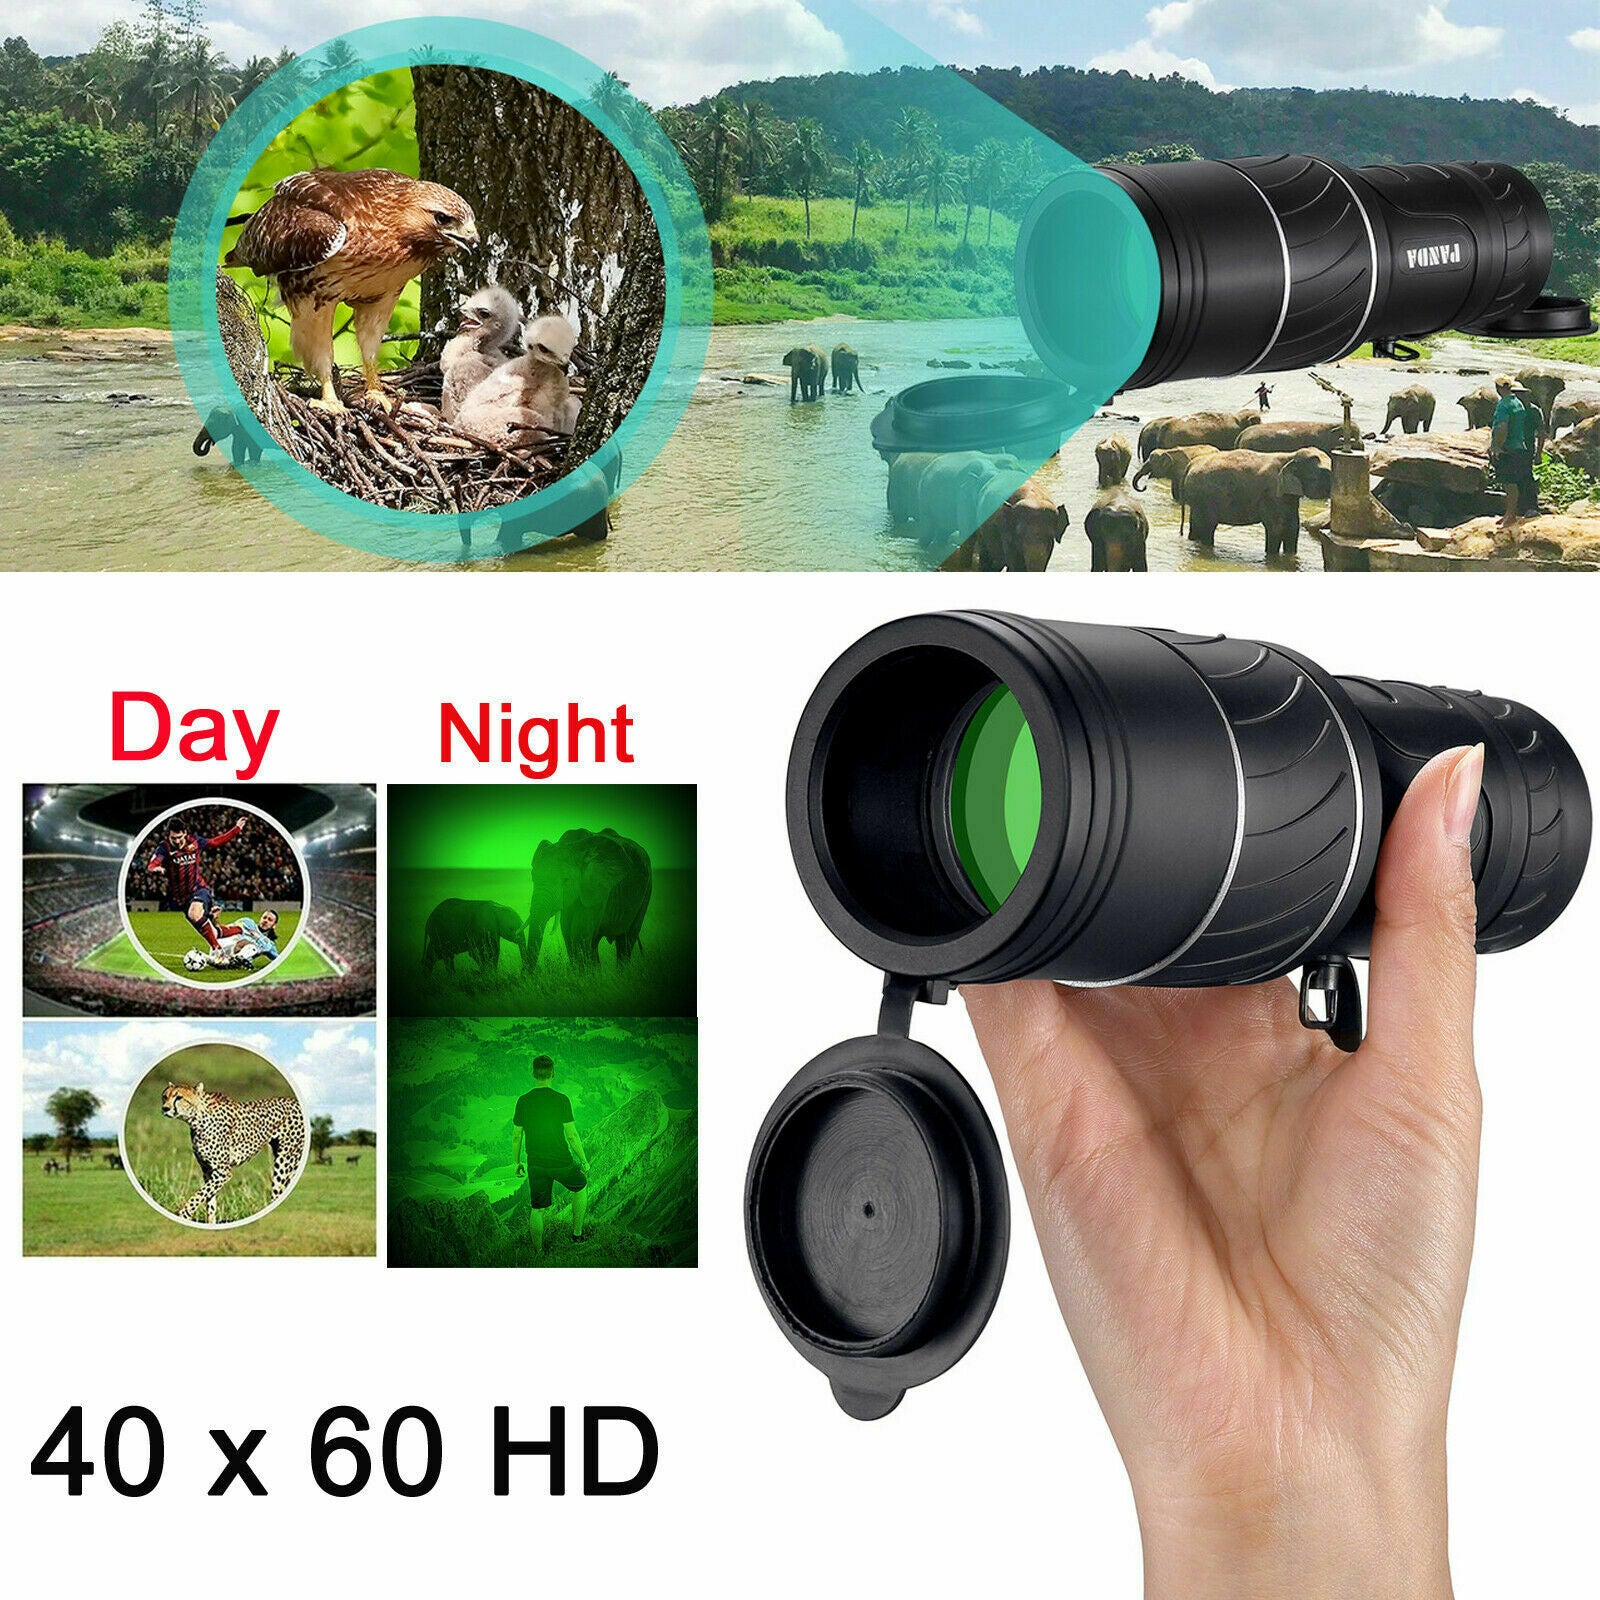 Reliable Tech's-Day Night Vision 40X60 HD Hunting Binoculars Optical Telescope Handheld Scope US